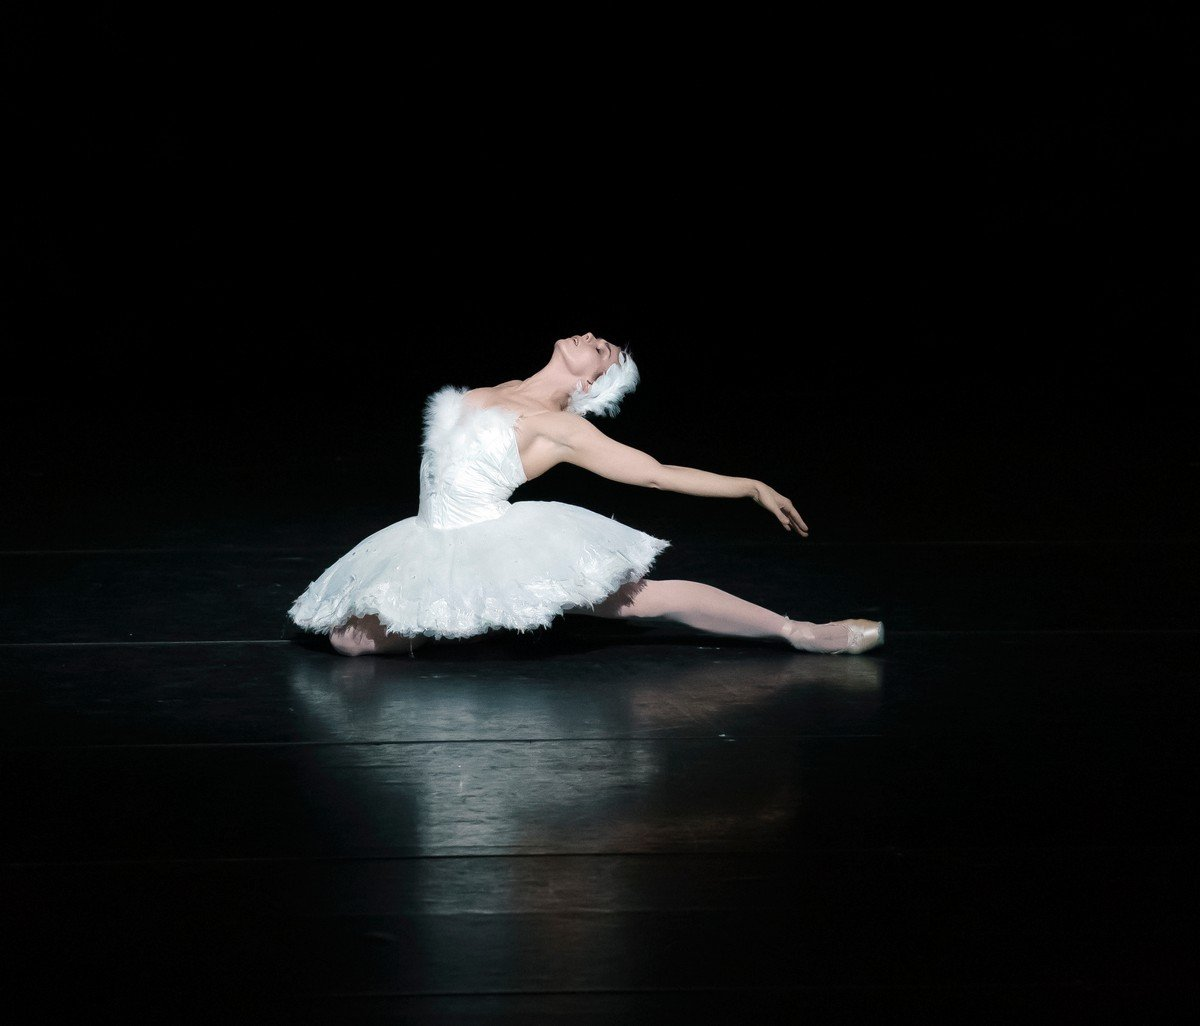 Dying Swan, Natalia Osipova, Royal Ballet Live, photo by Emma Kauldhar ROH 2020